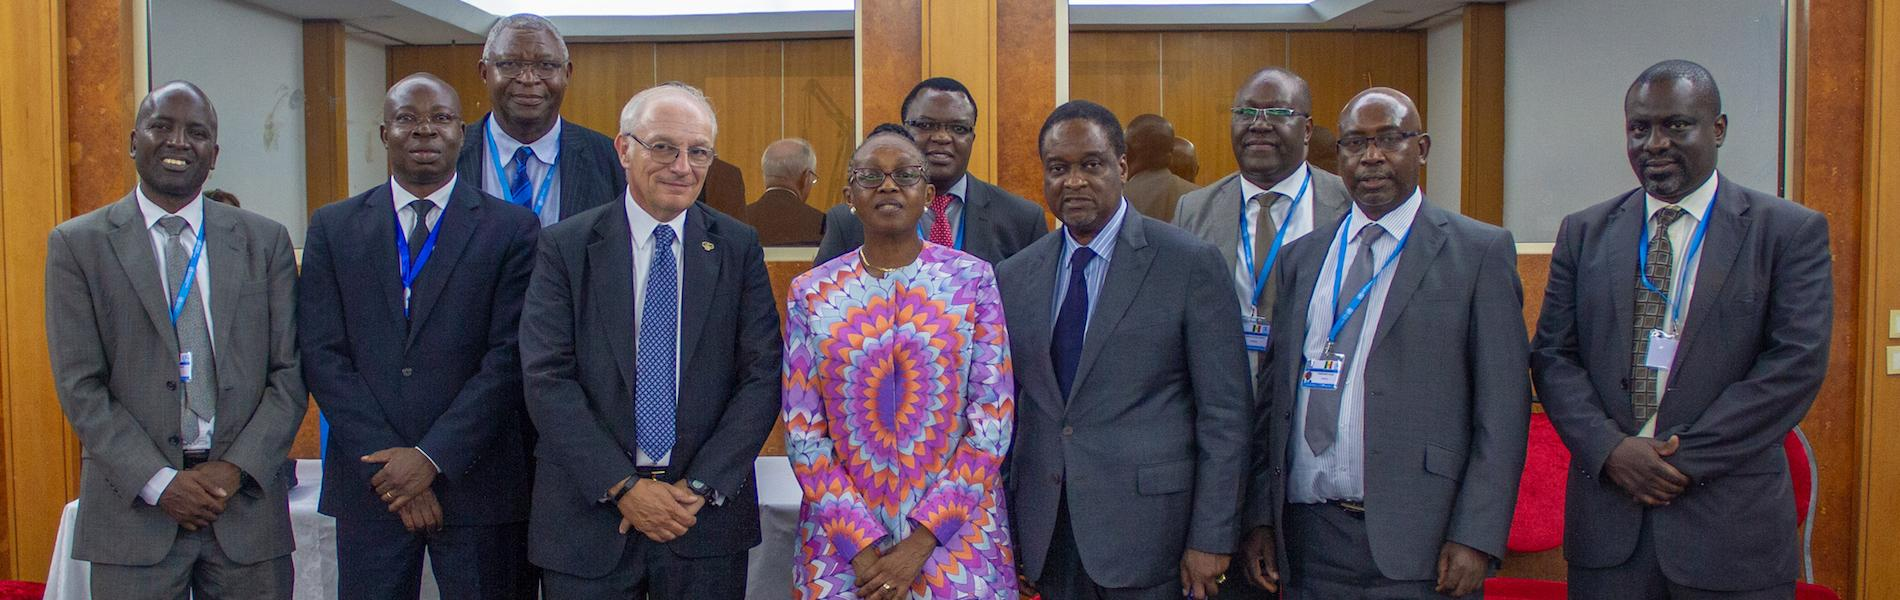 WHO and Mercy Ships sign collaborative agreement to strengthen surgical care in Africa